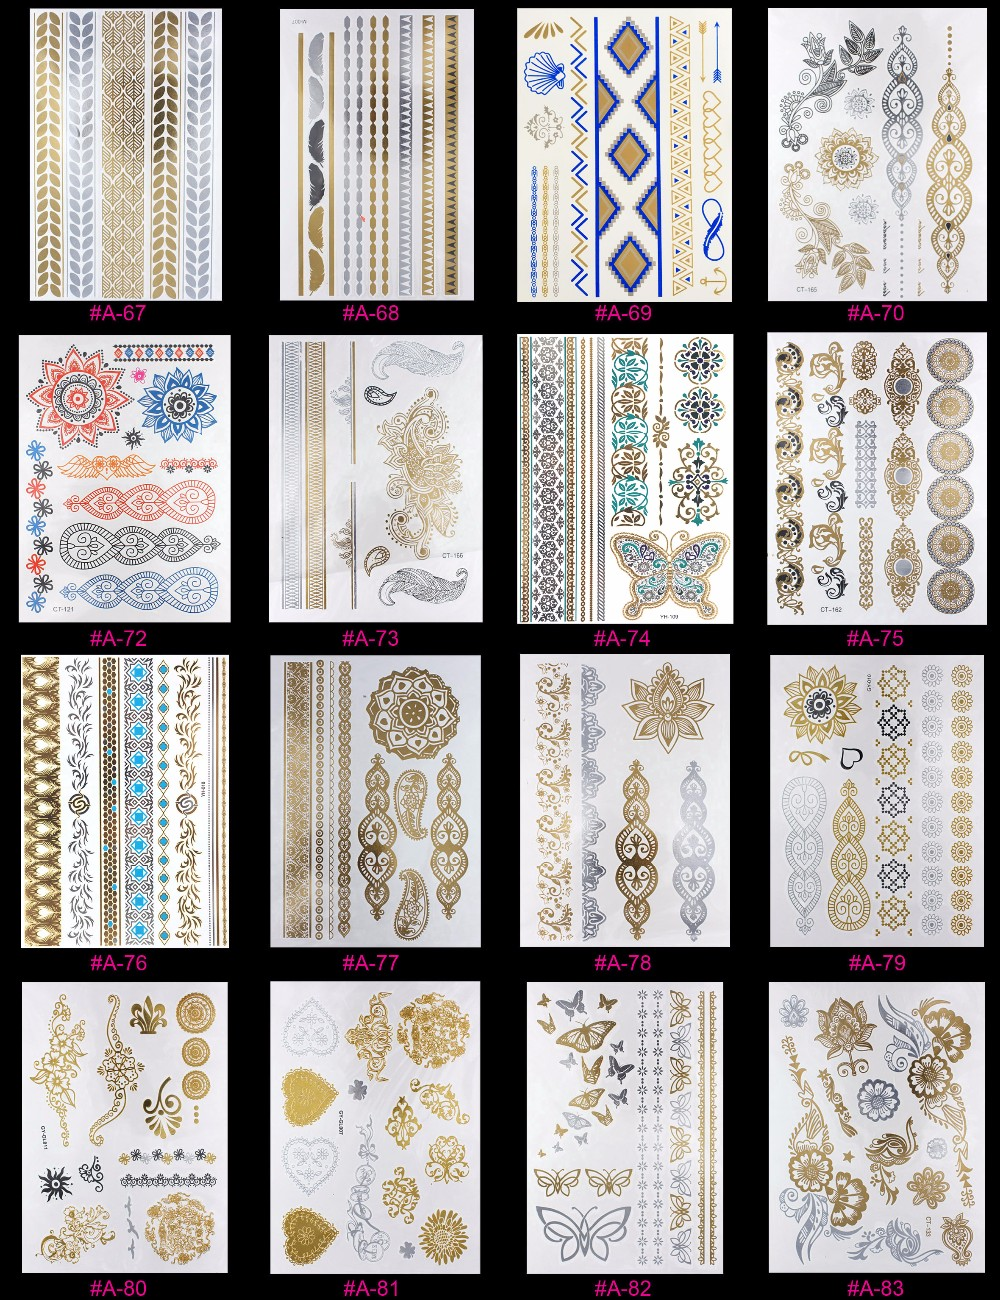 New Design Flash Removable Waterproof Gold Tattoos Metallic Temporary Tattoo Stickers Temporary Body Art Tattoo 16